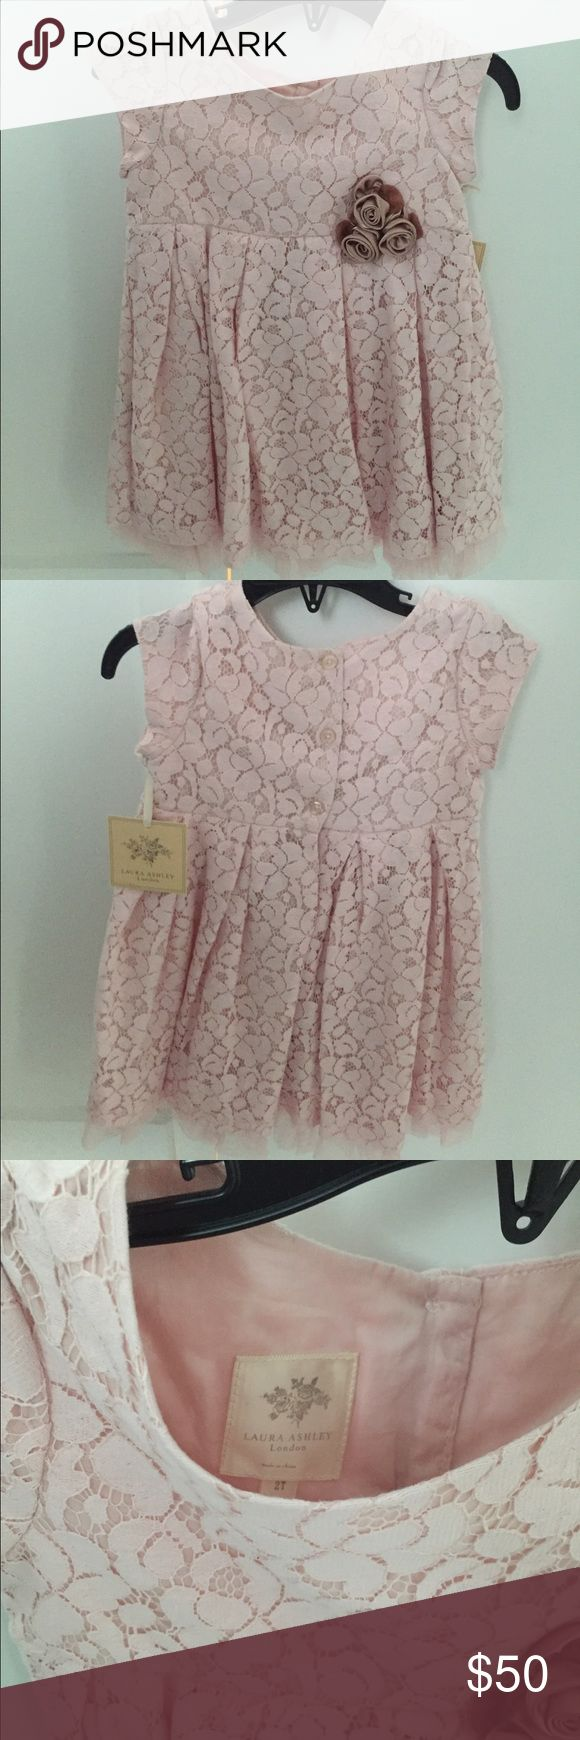 Girls pink lace Laura Ashley dress Beautiful pink lace girls fancy dress by Laura Ashley. Full lined with second layer tulle trim on the end. Rose detail attached. New with tags. Size 2T. Laura Ashley Dresses Formal